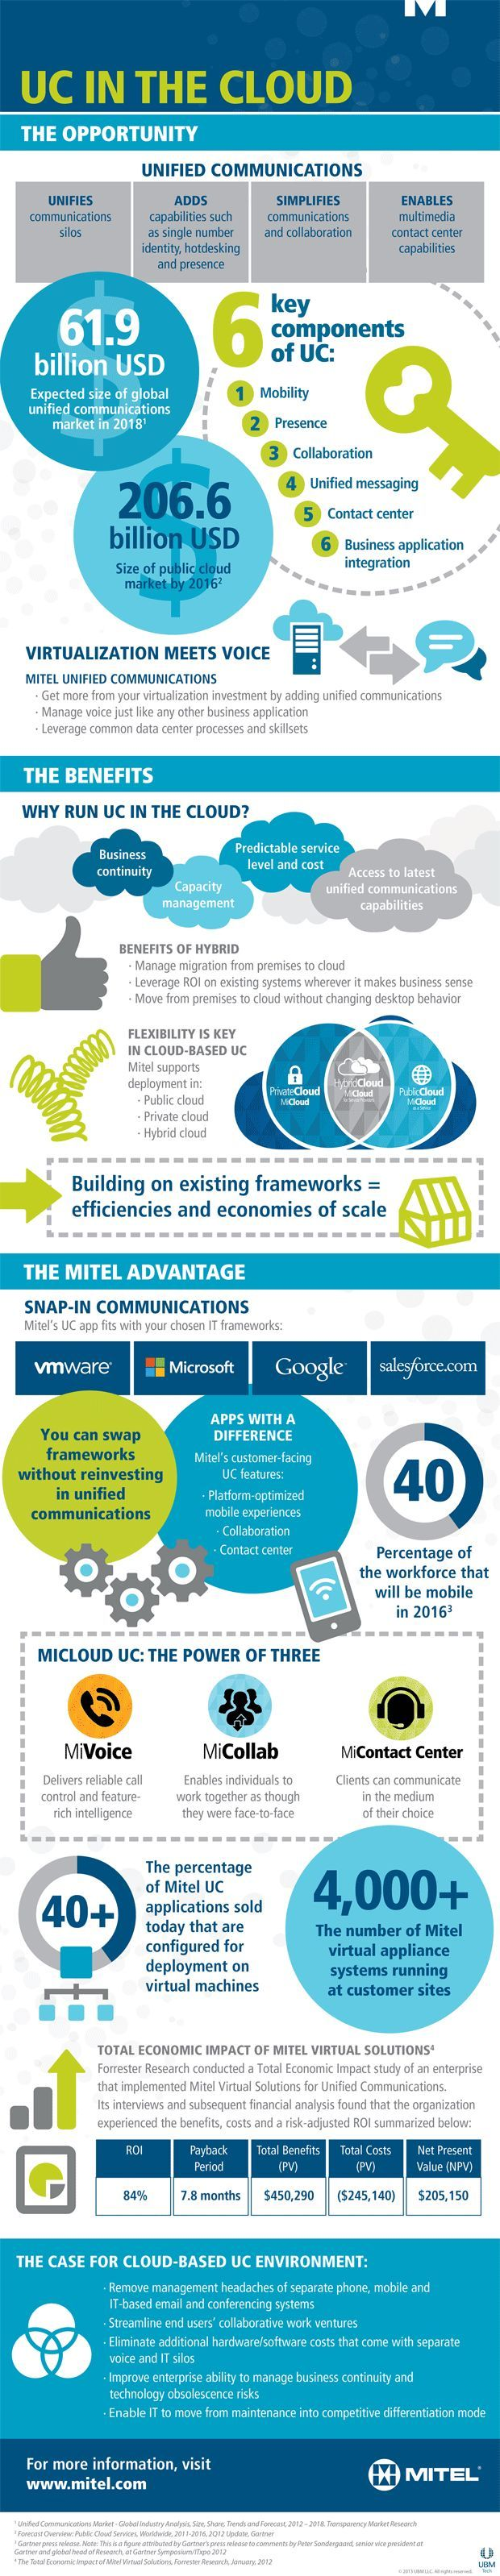 Mitel & Unified communications in the cloud